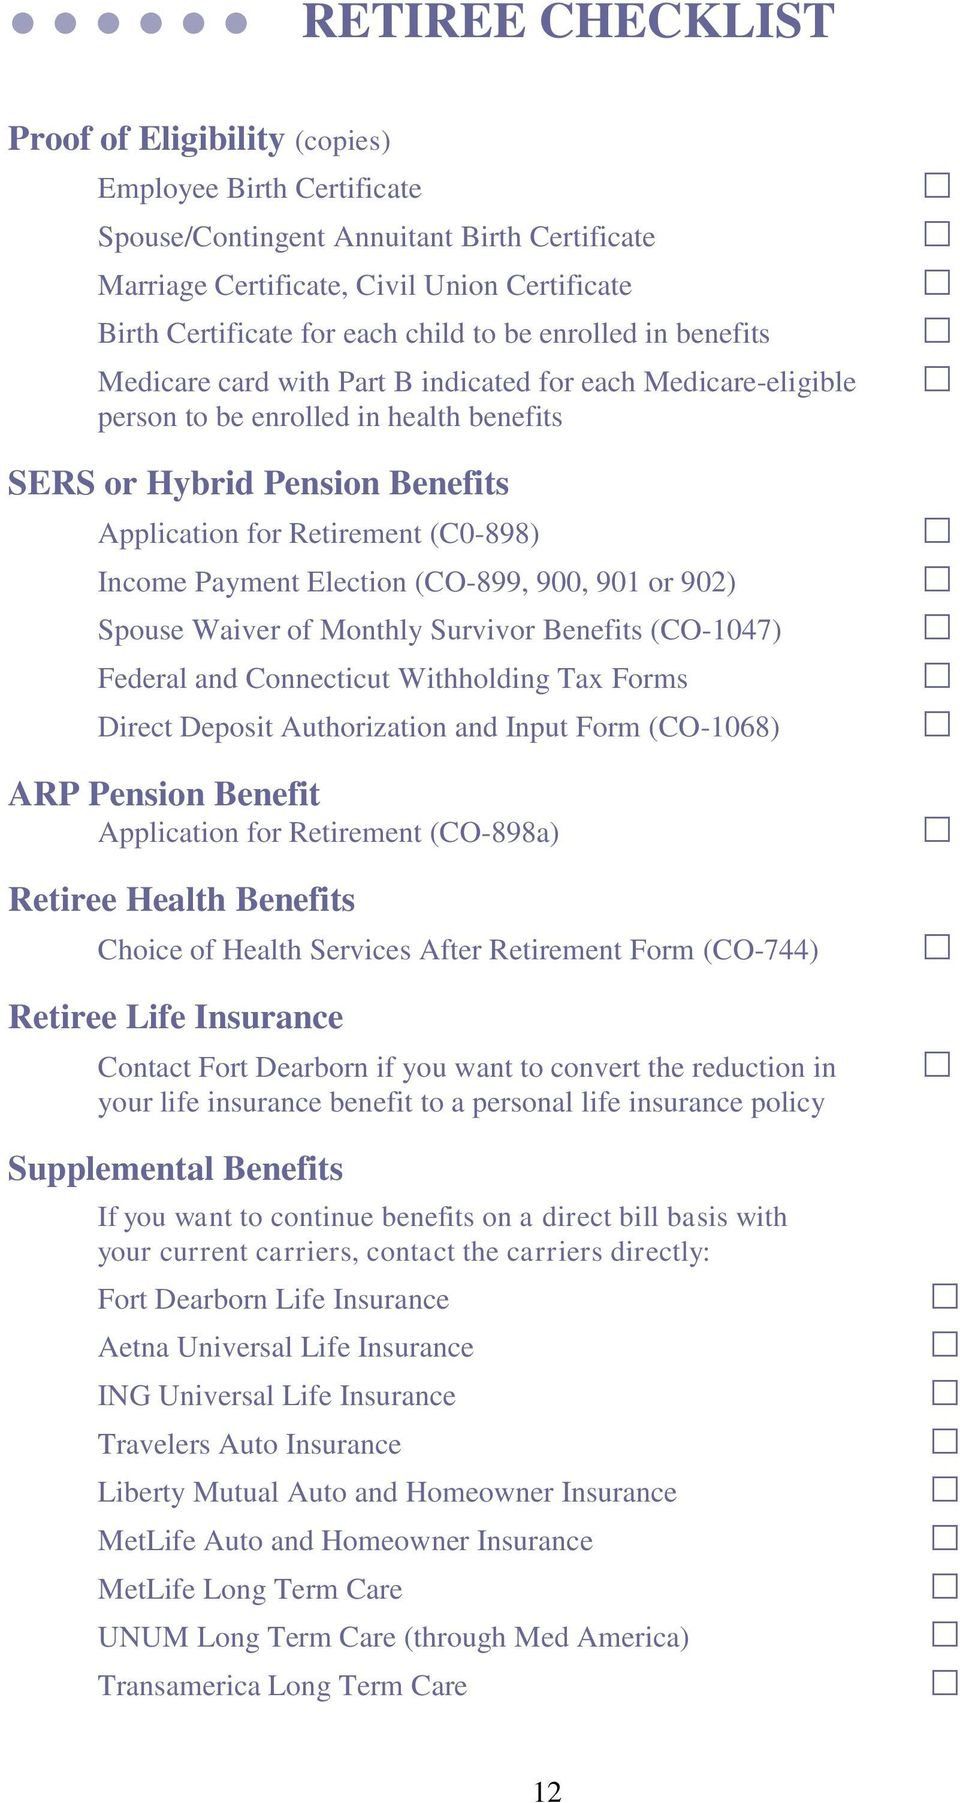 Income Payment Election (CO-899, 900, 901 or 902) Spouse Waiver of Monthly Survivor Benefits (CO-1047) Federal and Connecticut Withholding Tax Forms Direct Deposit Authorization and Input Form